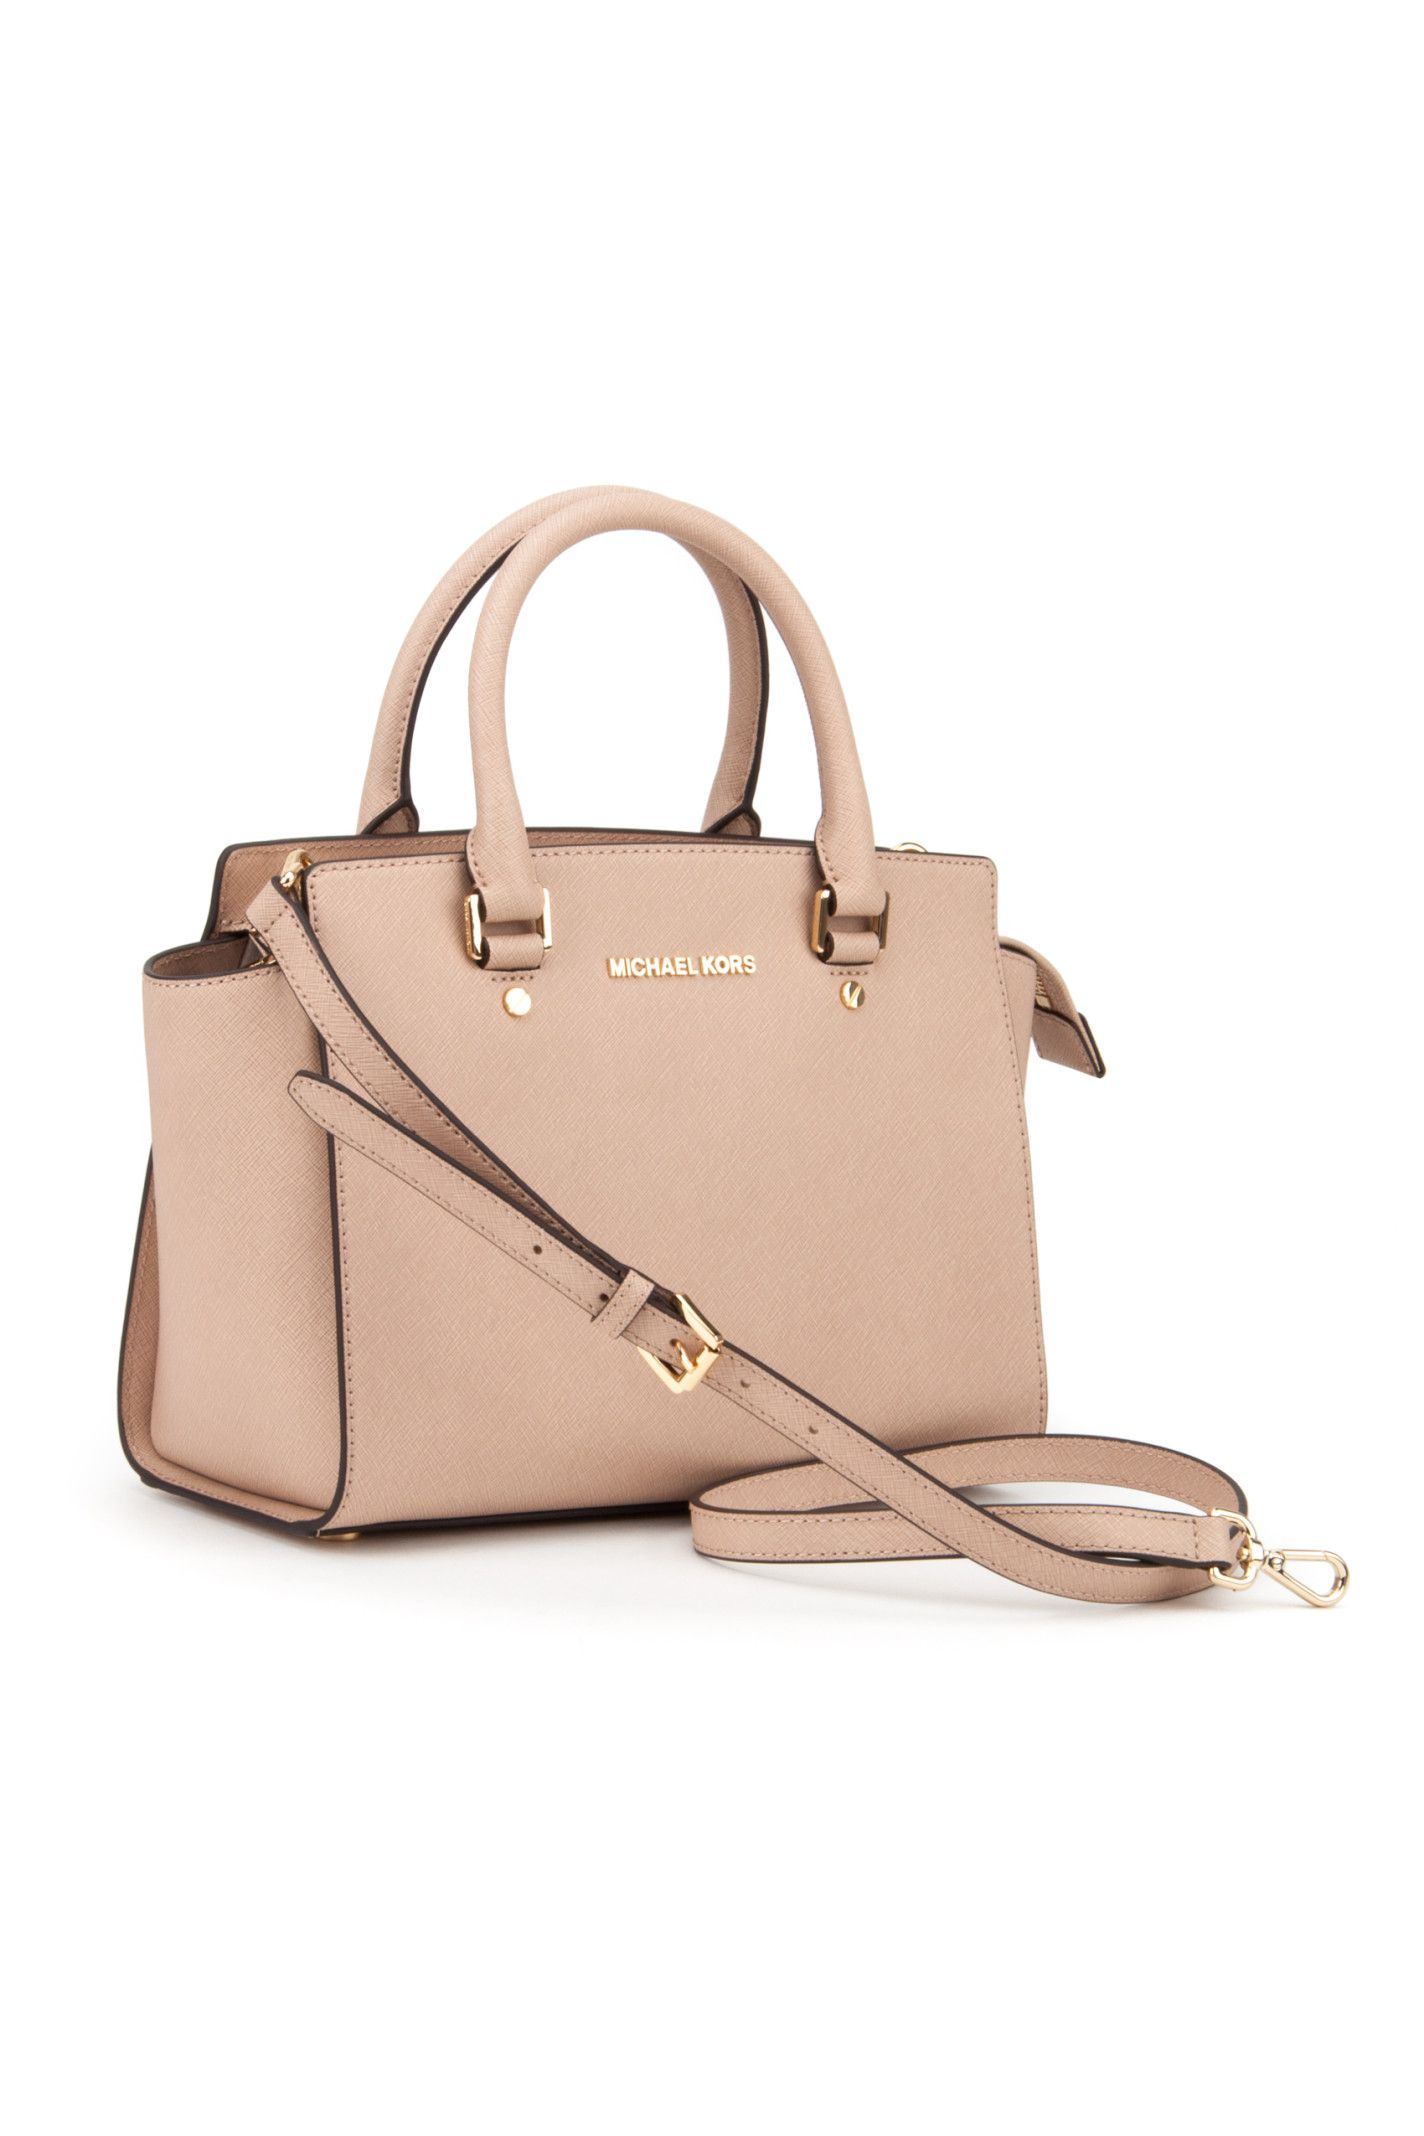 49128f097a3d michael kors on | Bags ❤ | Bags, Michael kors bag, Zipper bags